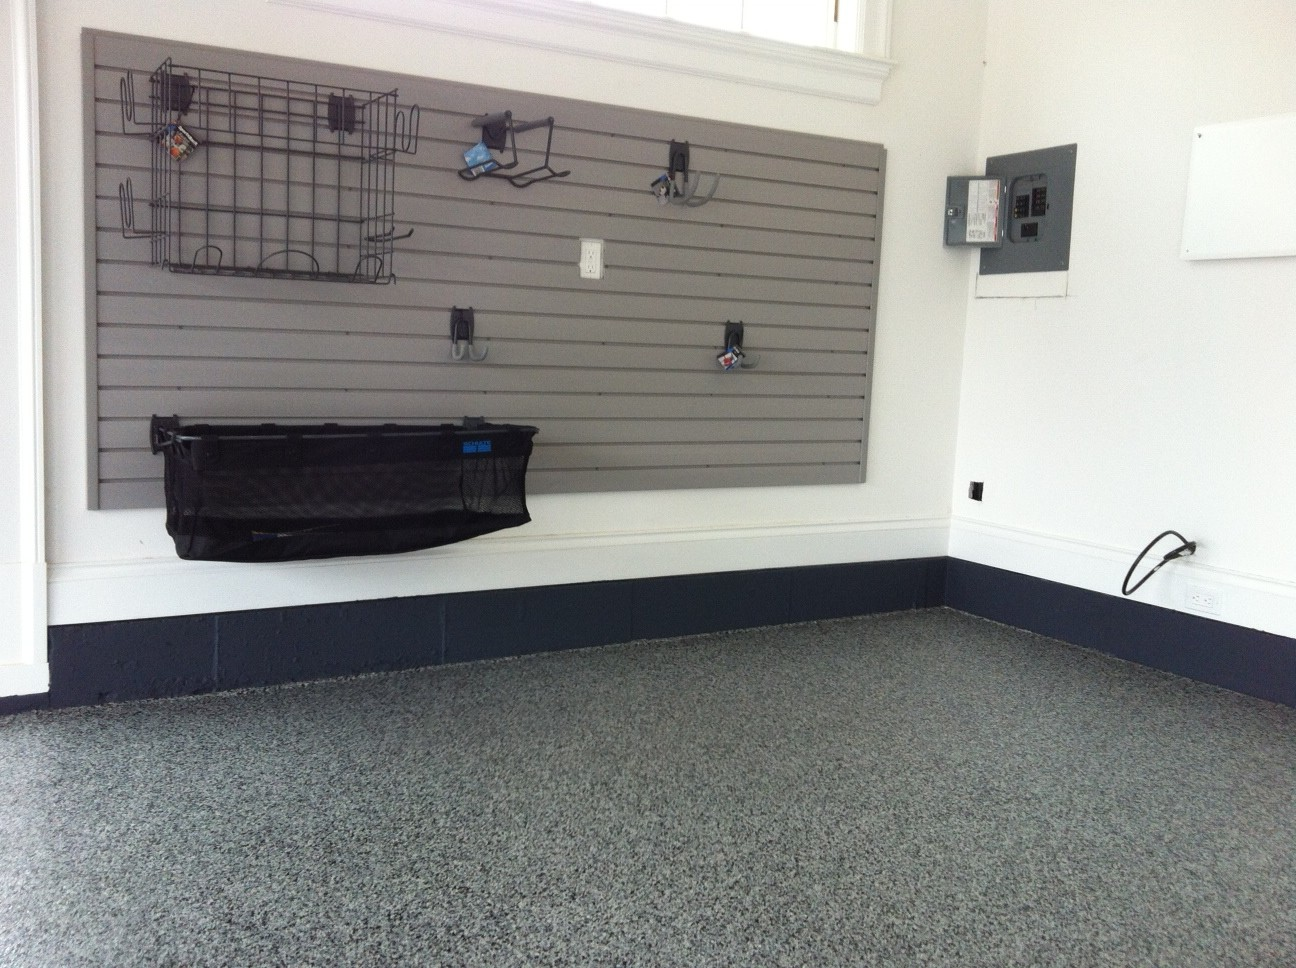 Graphite Floor, Painted Stem Wall & Grey Slat Wall organization